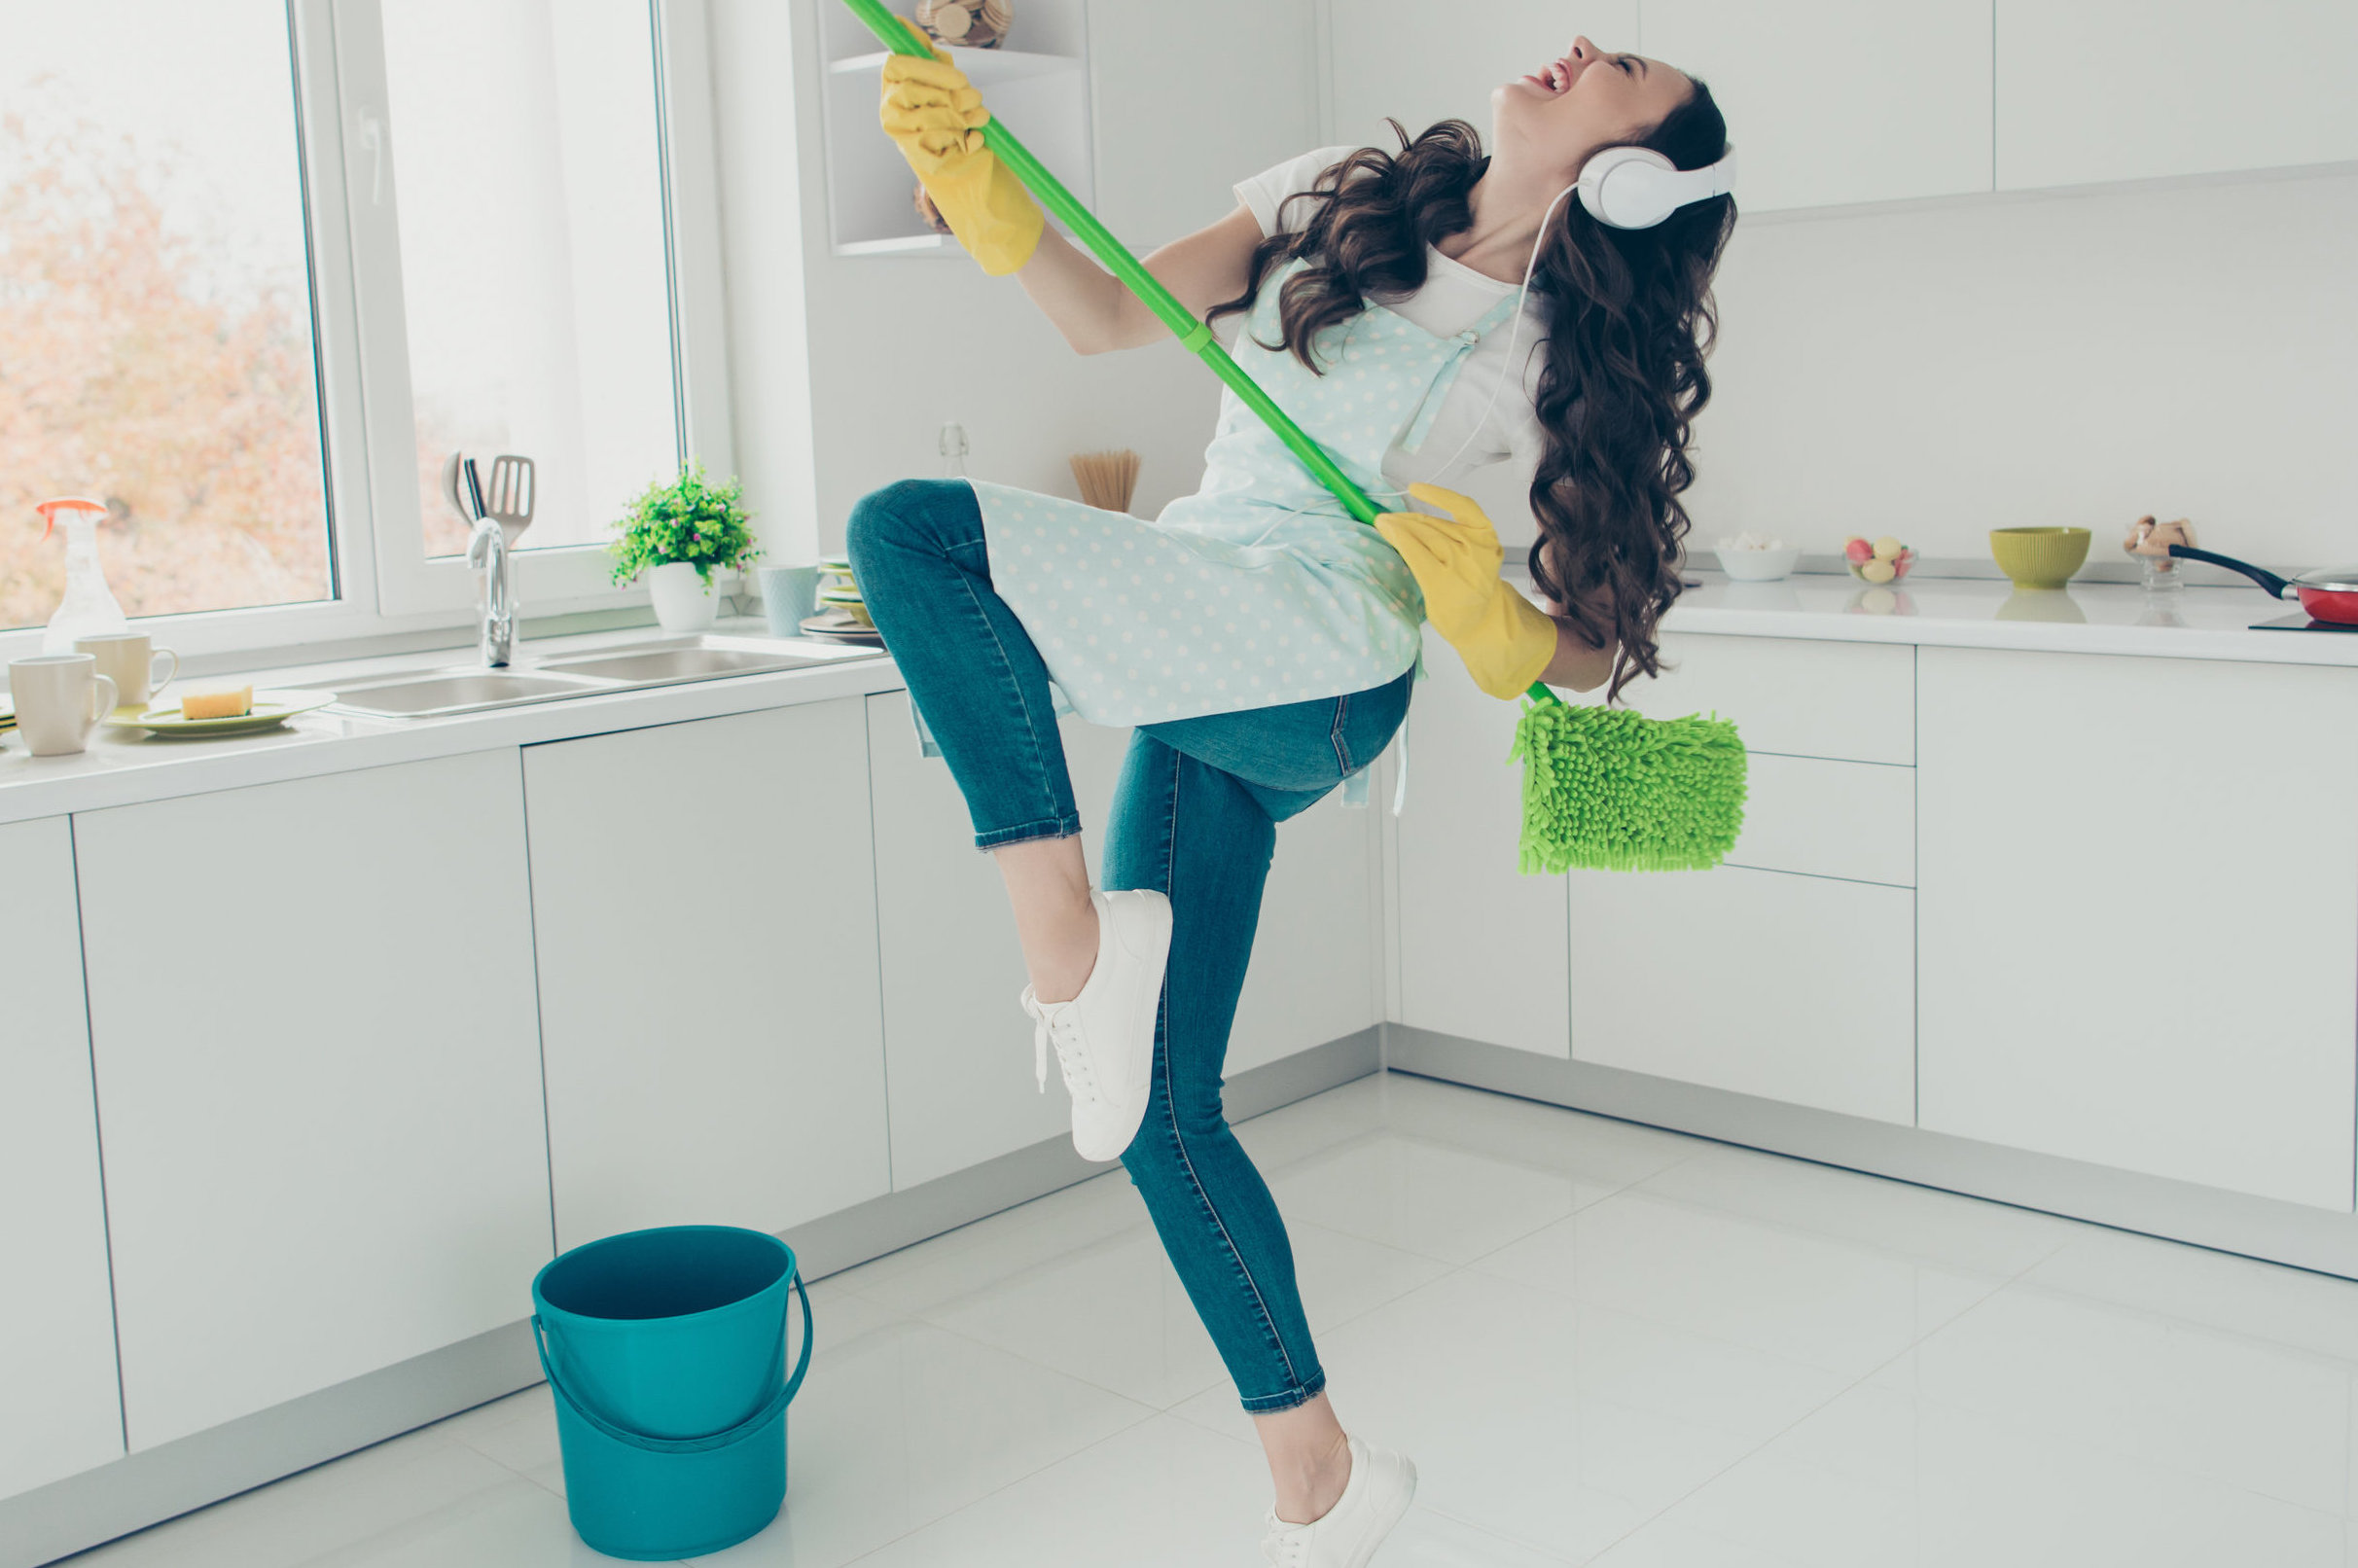 Young woman wearing headphones and dancing with her broom